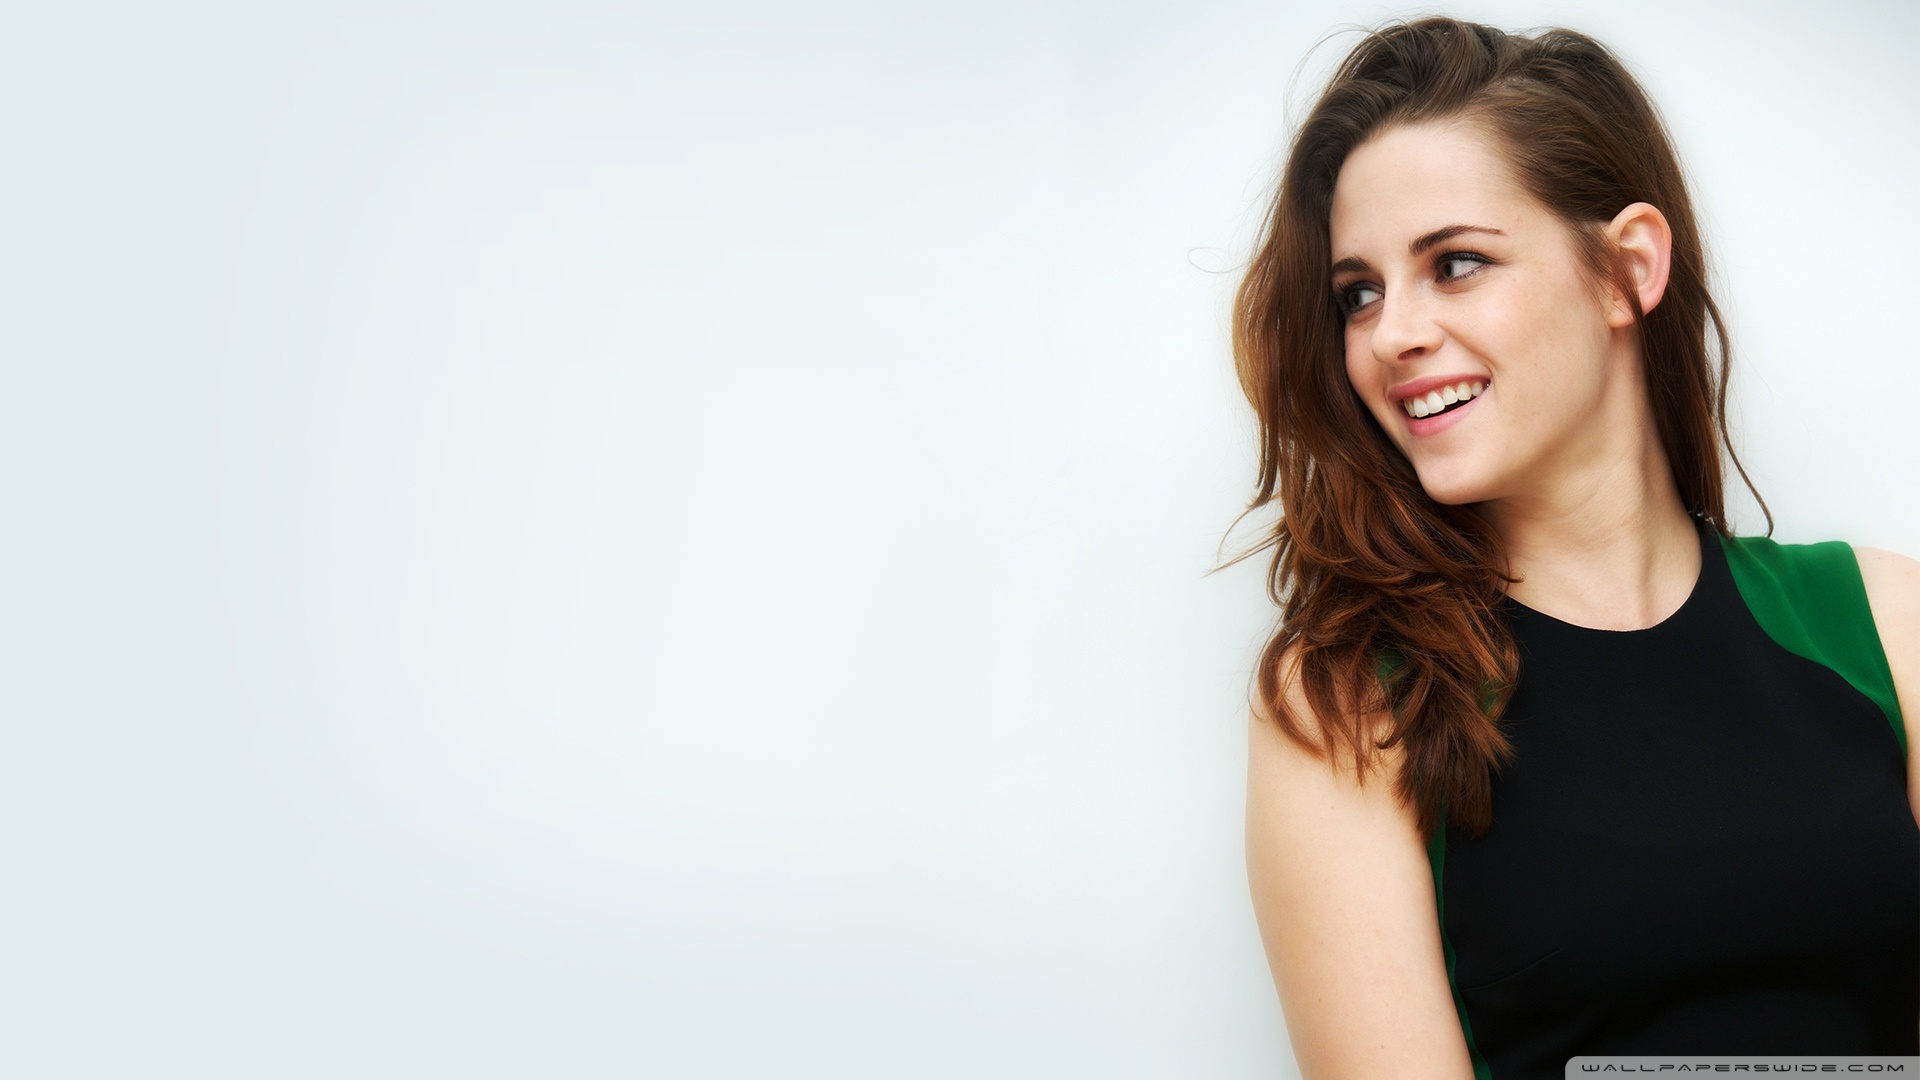 WallpapersWide com | Kristen Stewart HD Desktop Wallpapers for